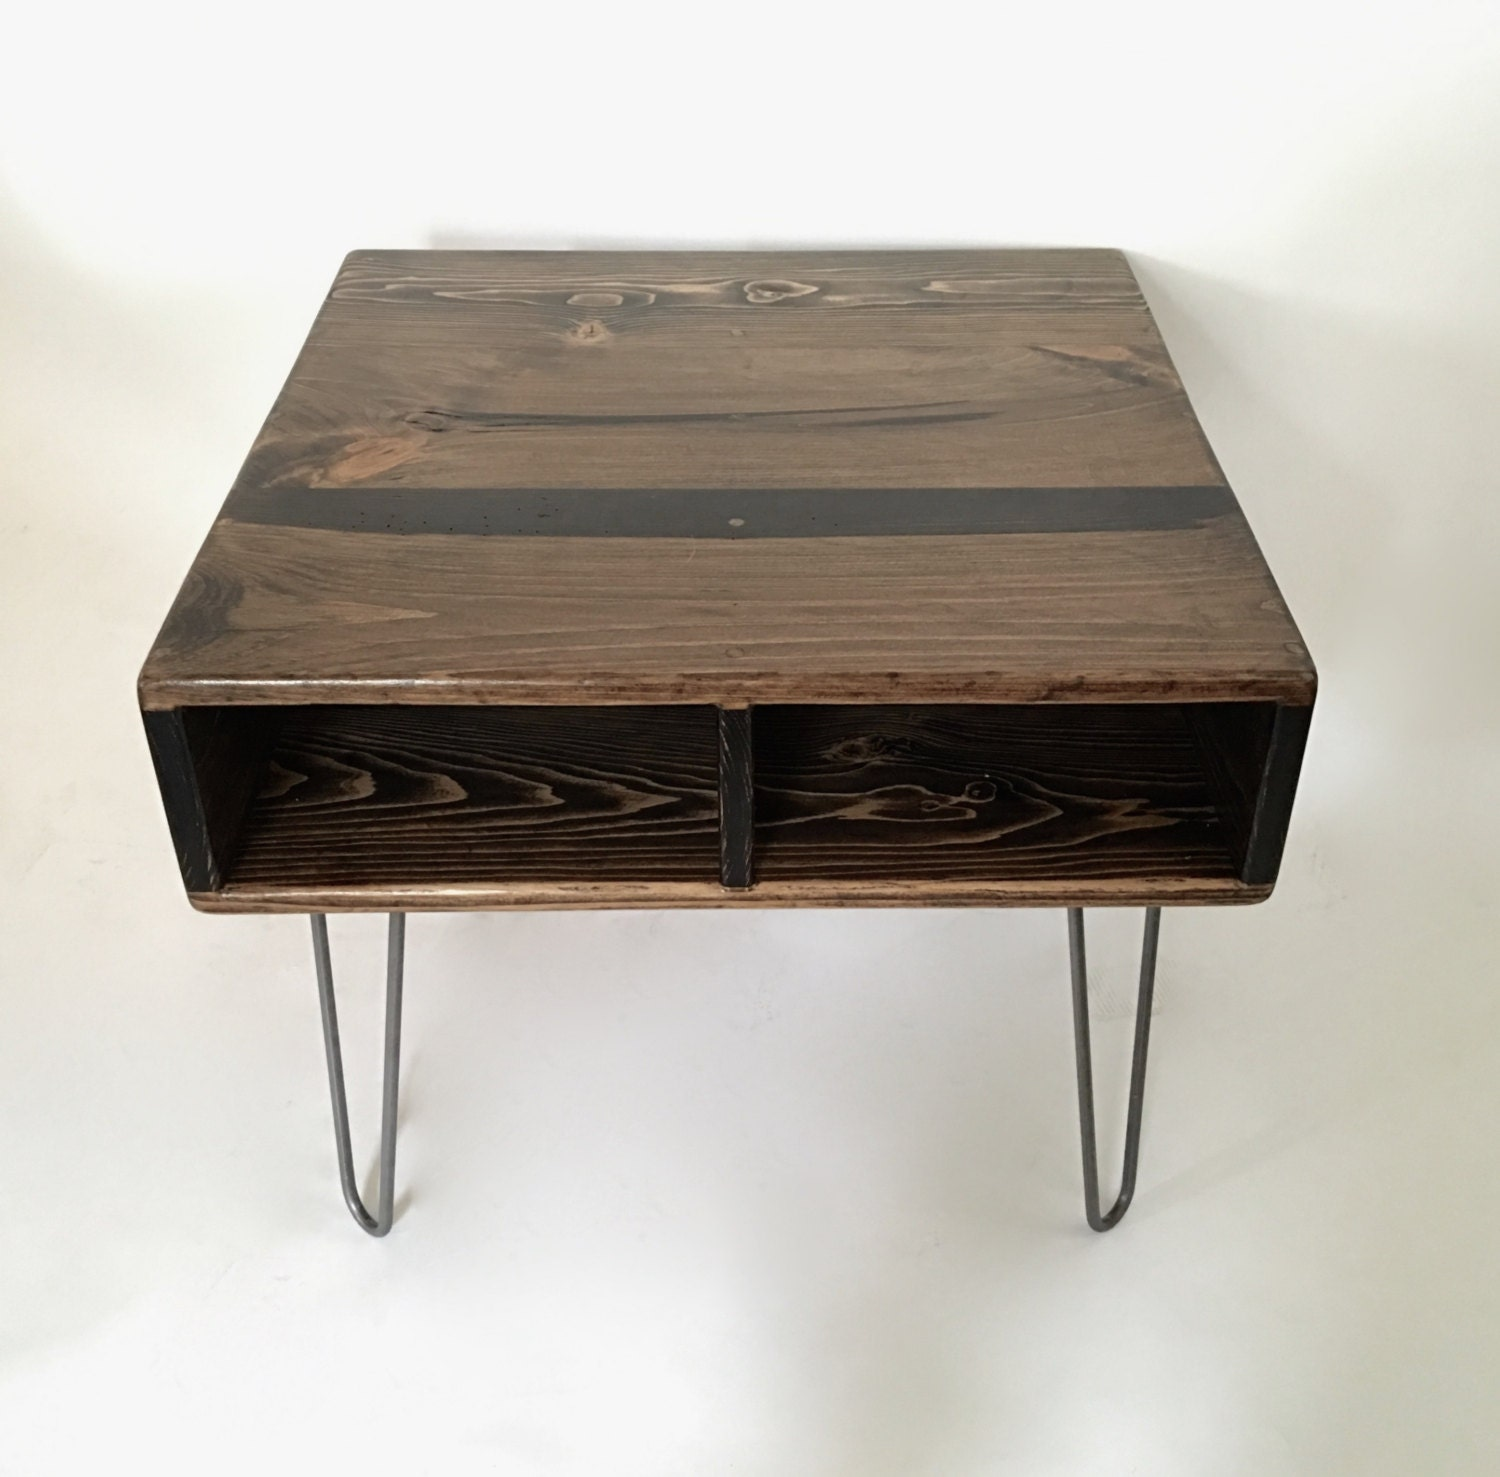 24 x 24 square reclaimed wood coffee table for 24 x 24 coffee table